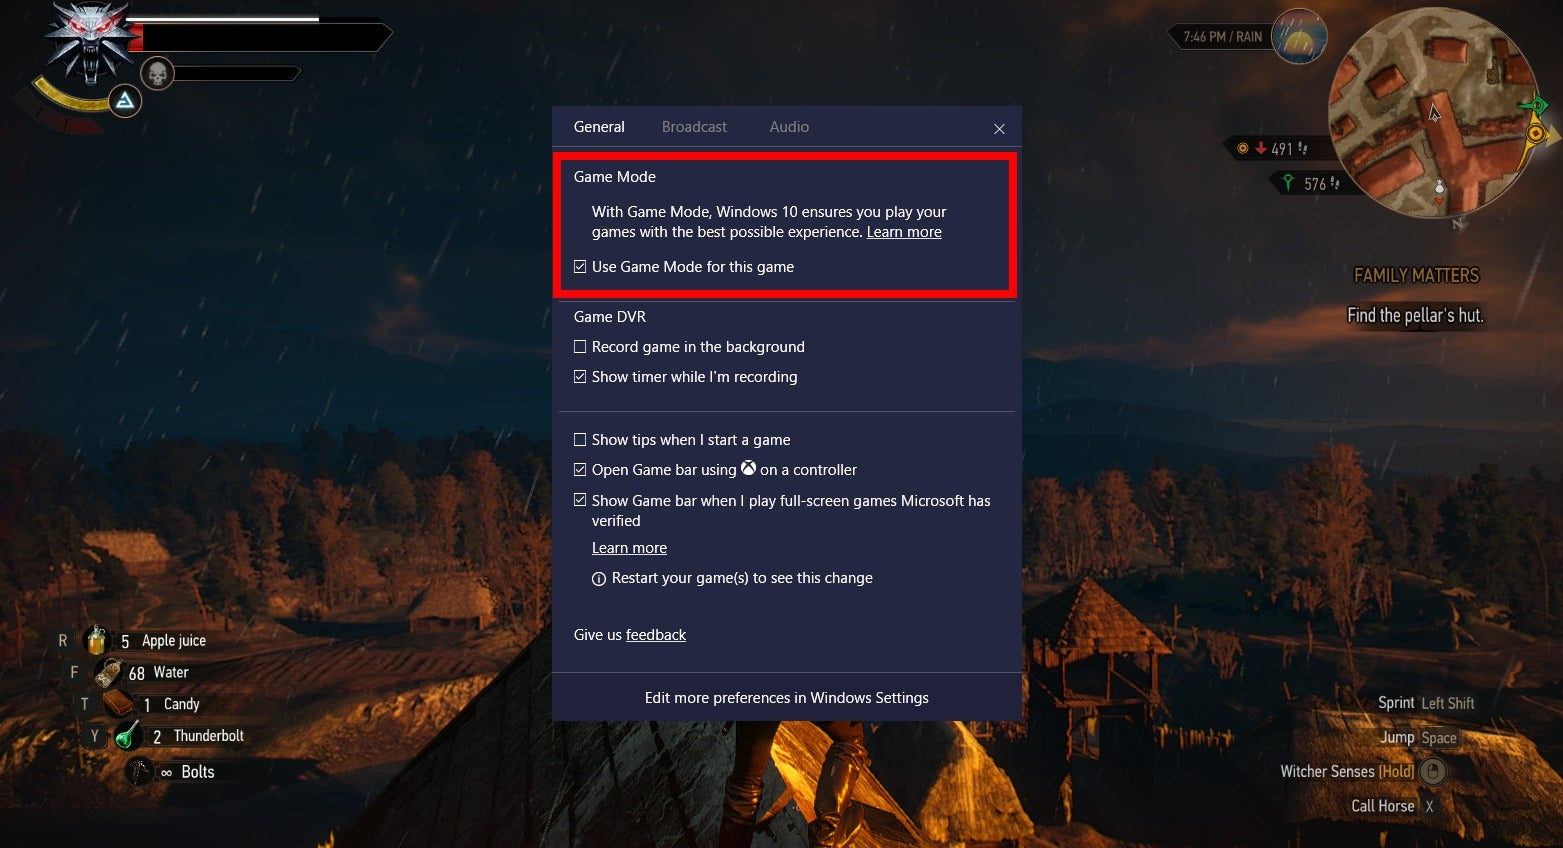 How to activate Game Mode in the Windows 10 Creators Update